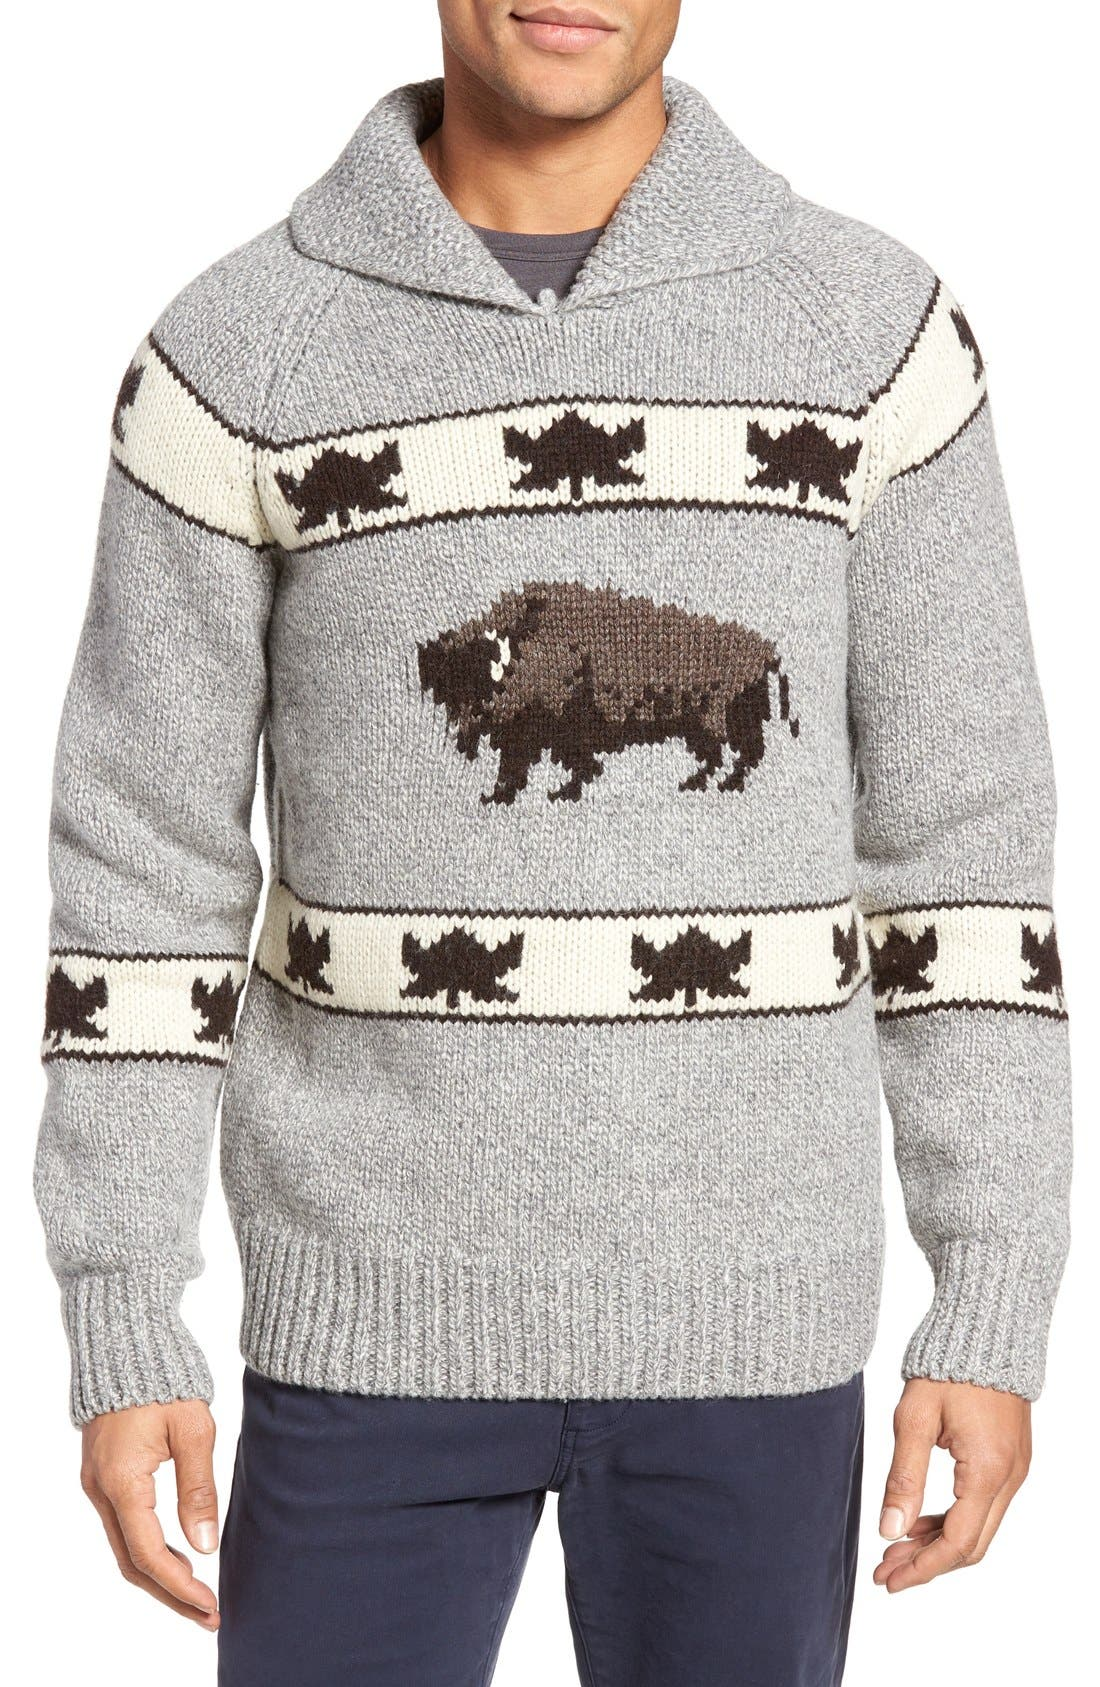 Cowichan Pullover Sweater,                         Main,                         color, 050